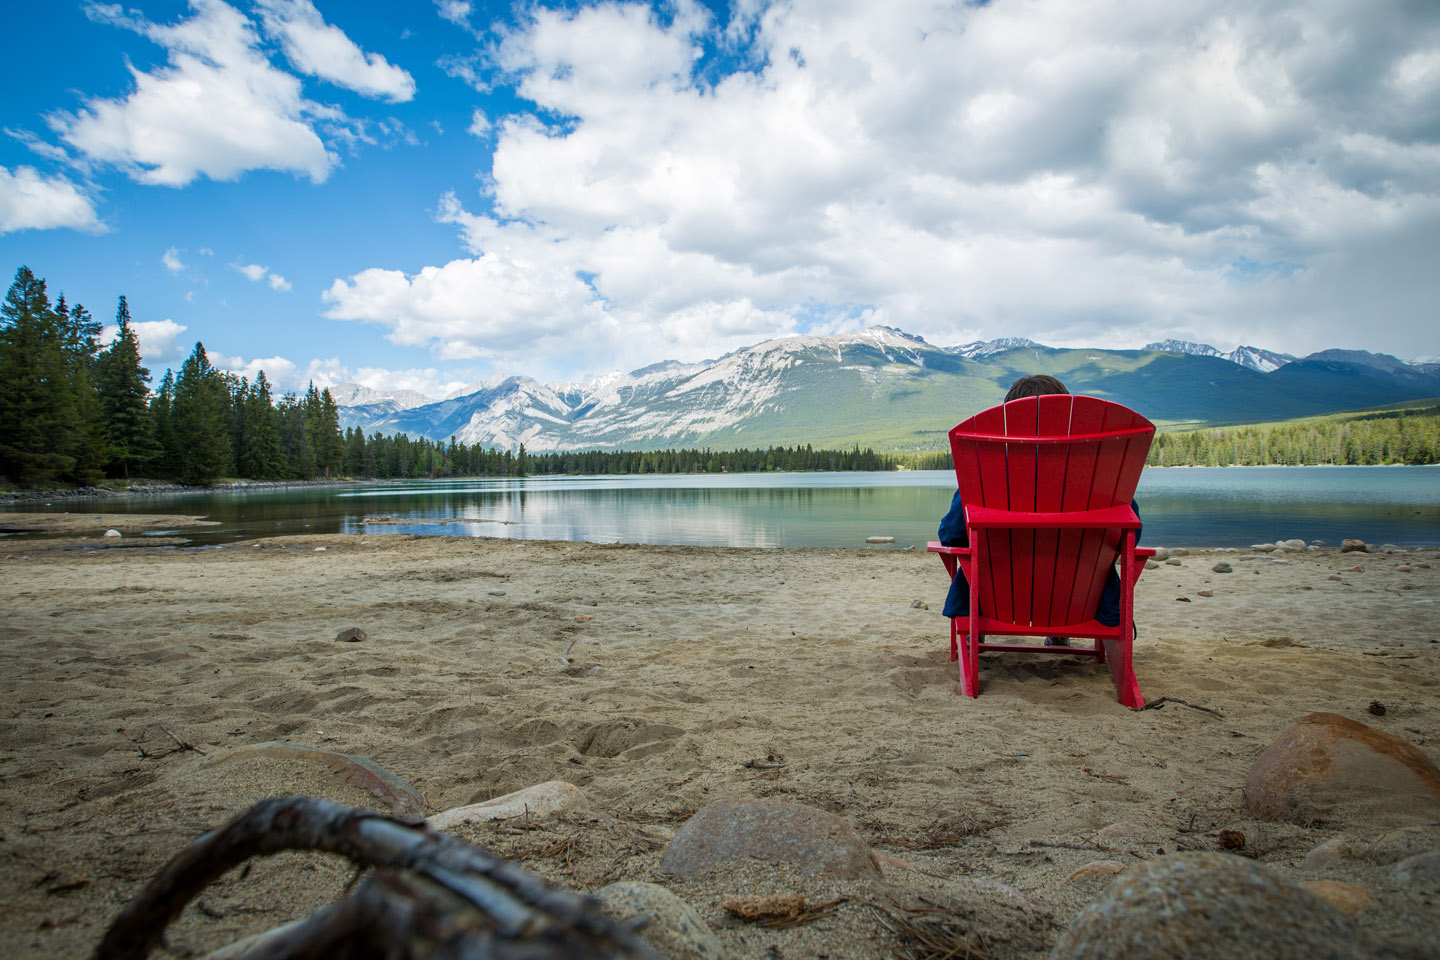 jasper national park s red chairs installed and ready for soaking